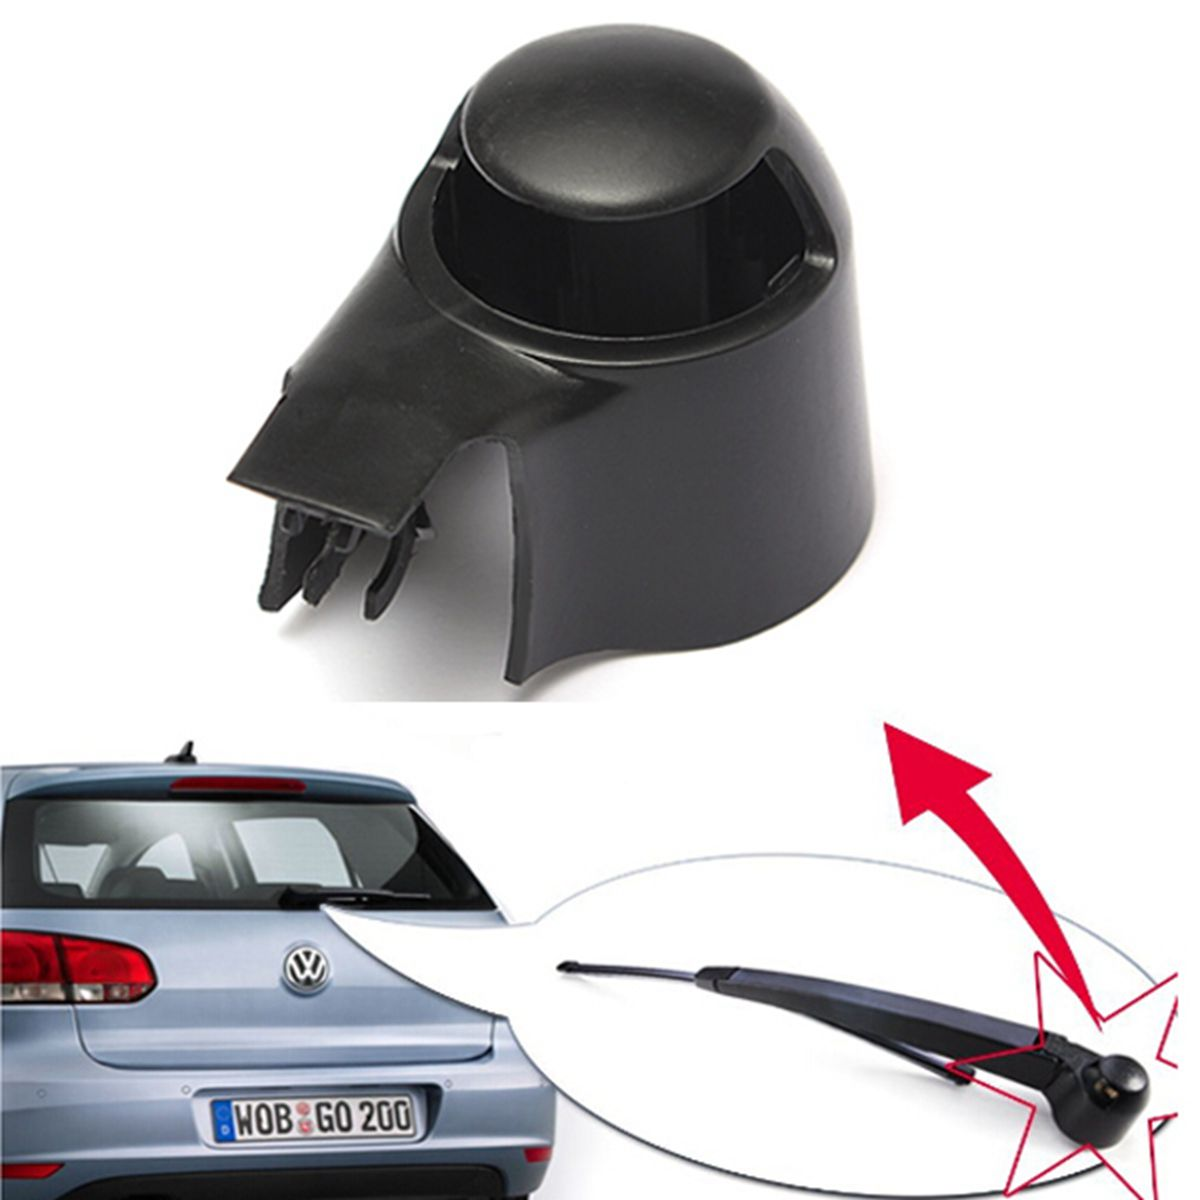 Black Car Rear Wiper Washer Arm Blade Cover Cap For VW MK5 Golf Passat Caddy Tiguan Touran(China)